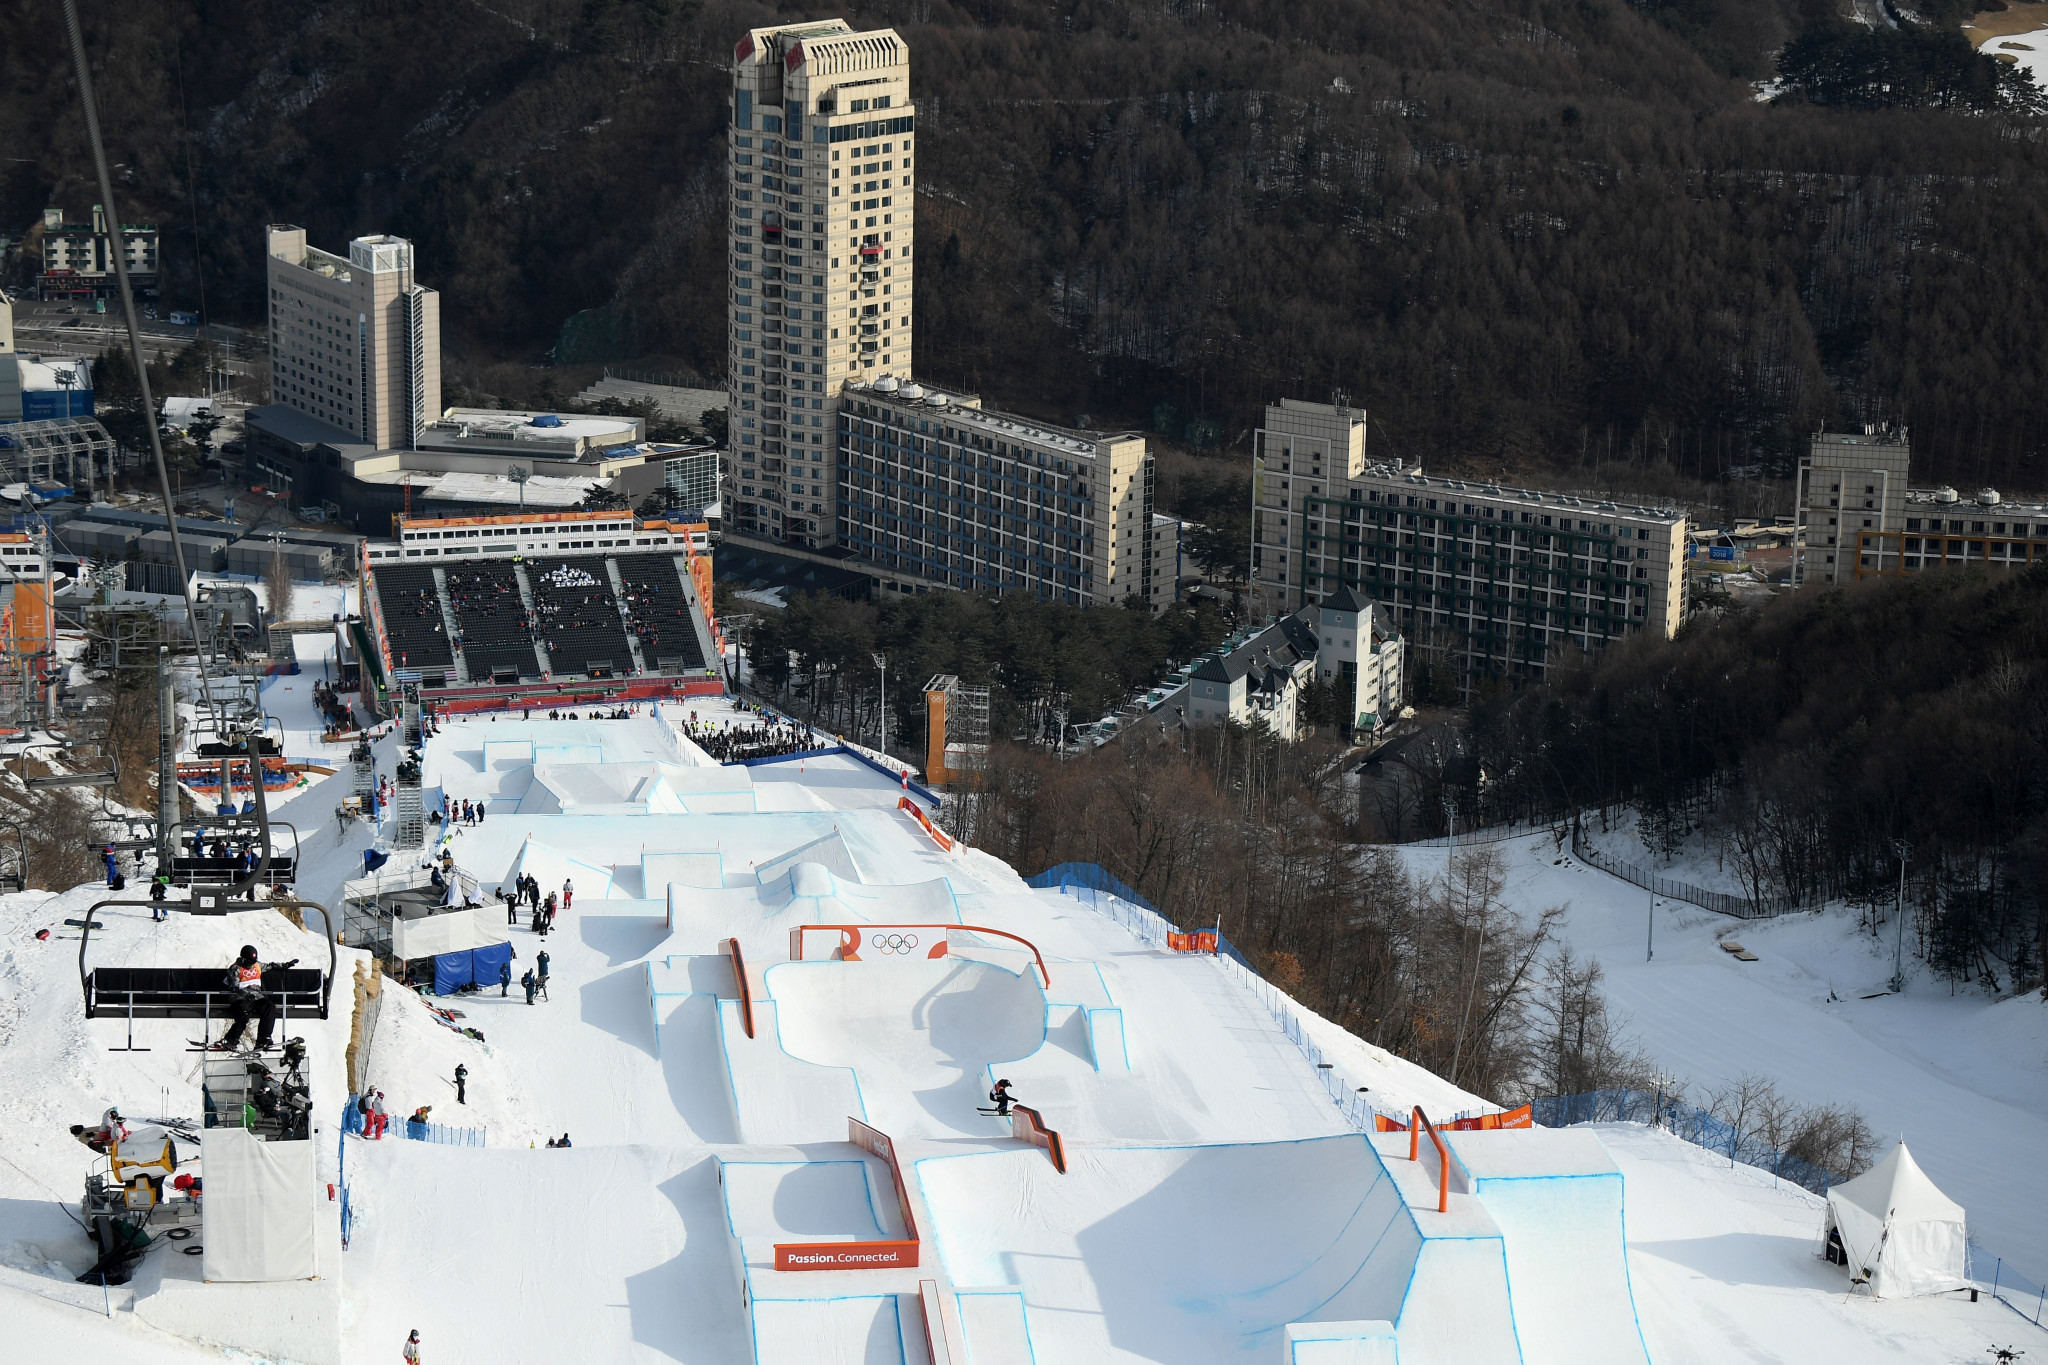 Dubi praises Pyeongchang 2018 at halfway stage but urges organisers to confirm three venue legacy plans